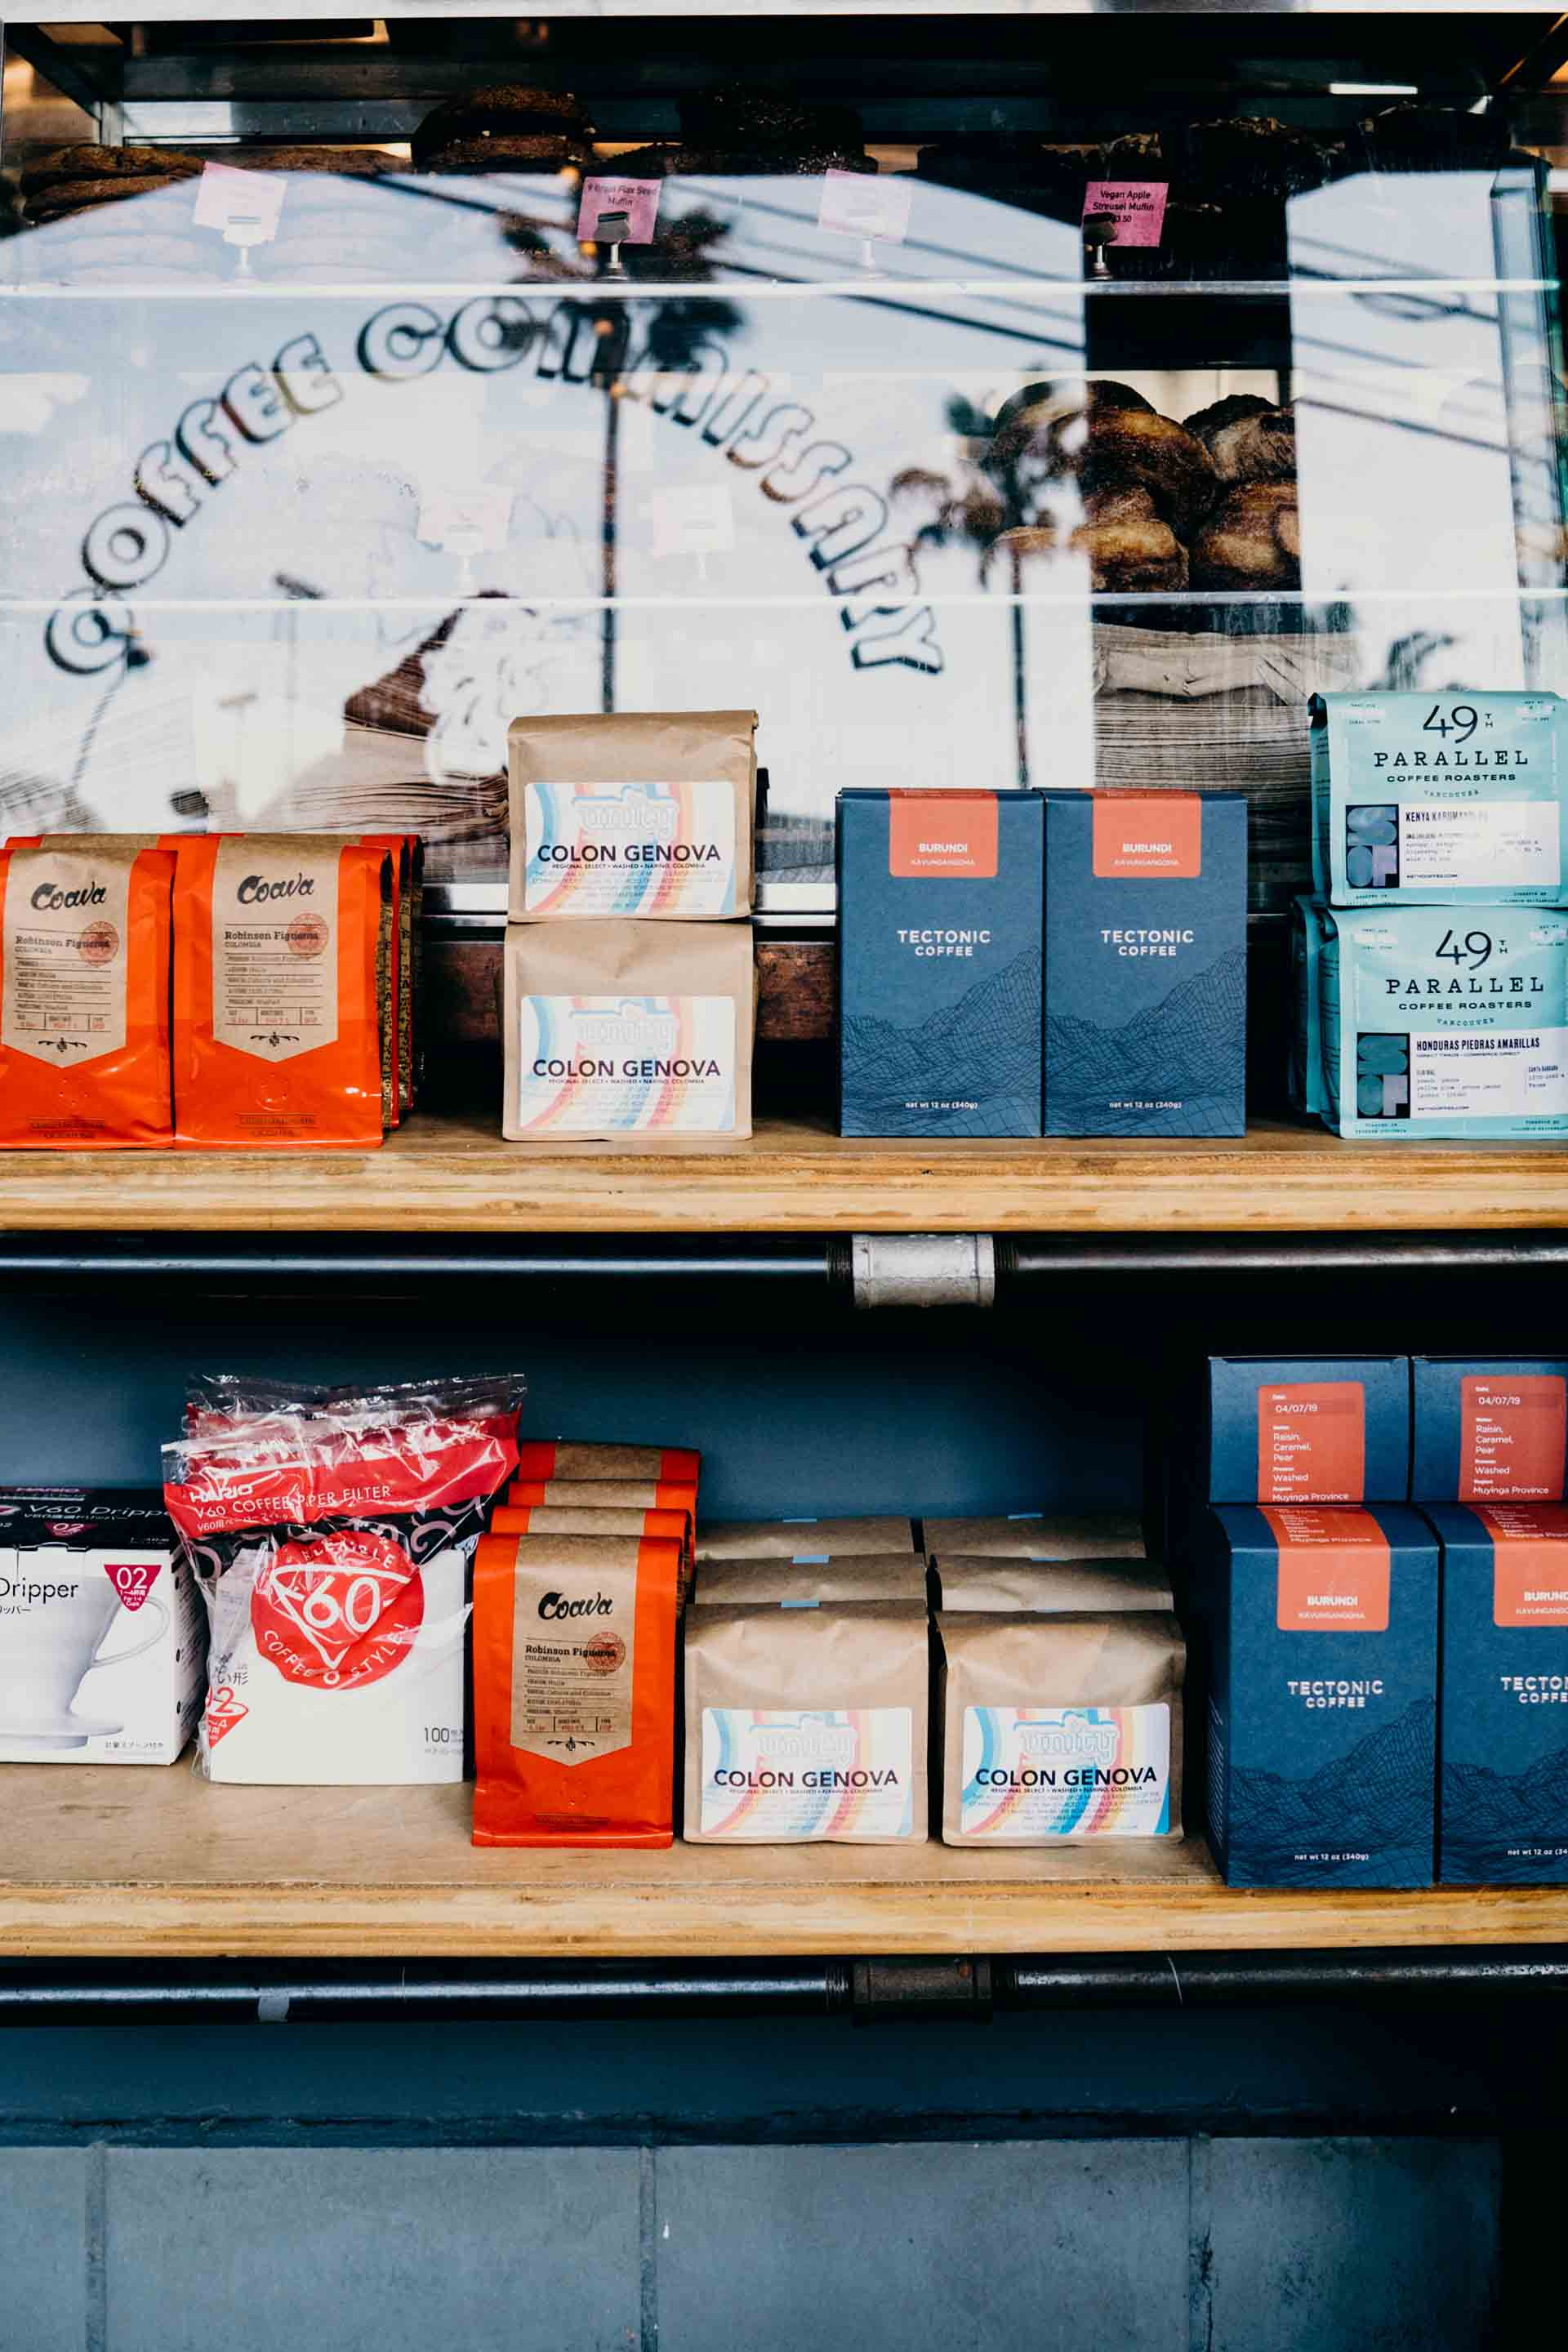 Coffee packages on the shelf